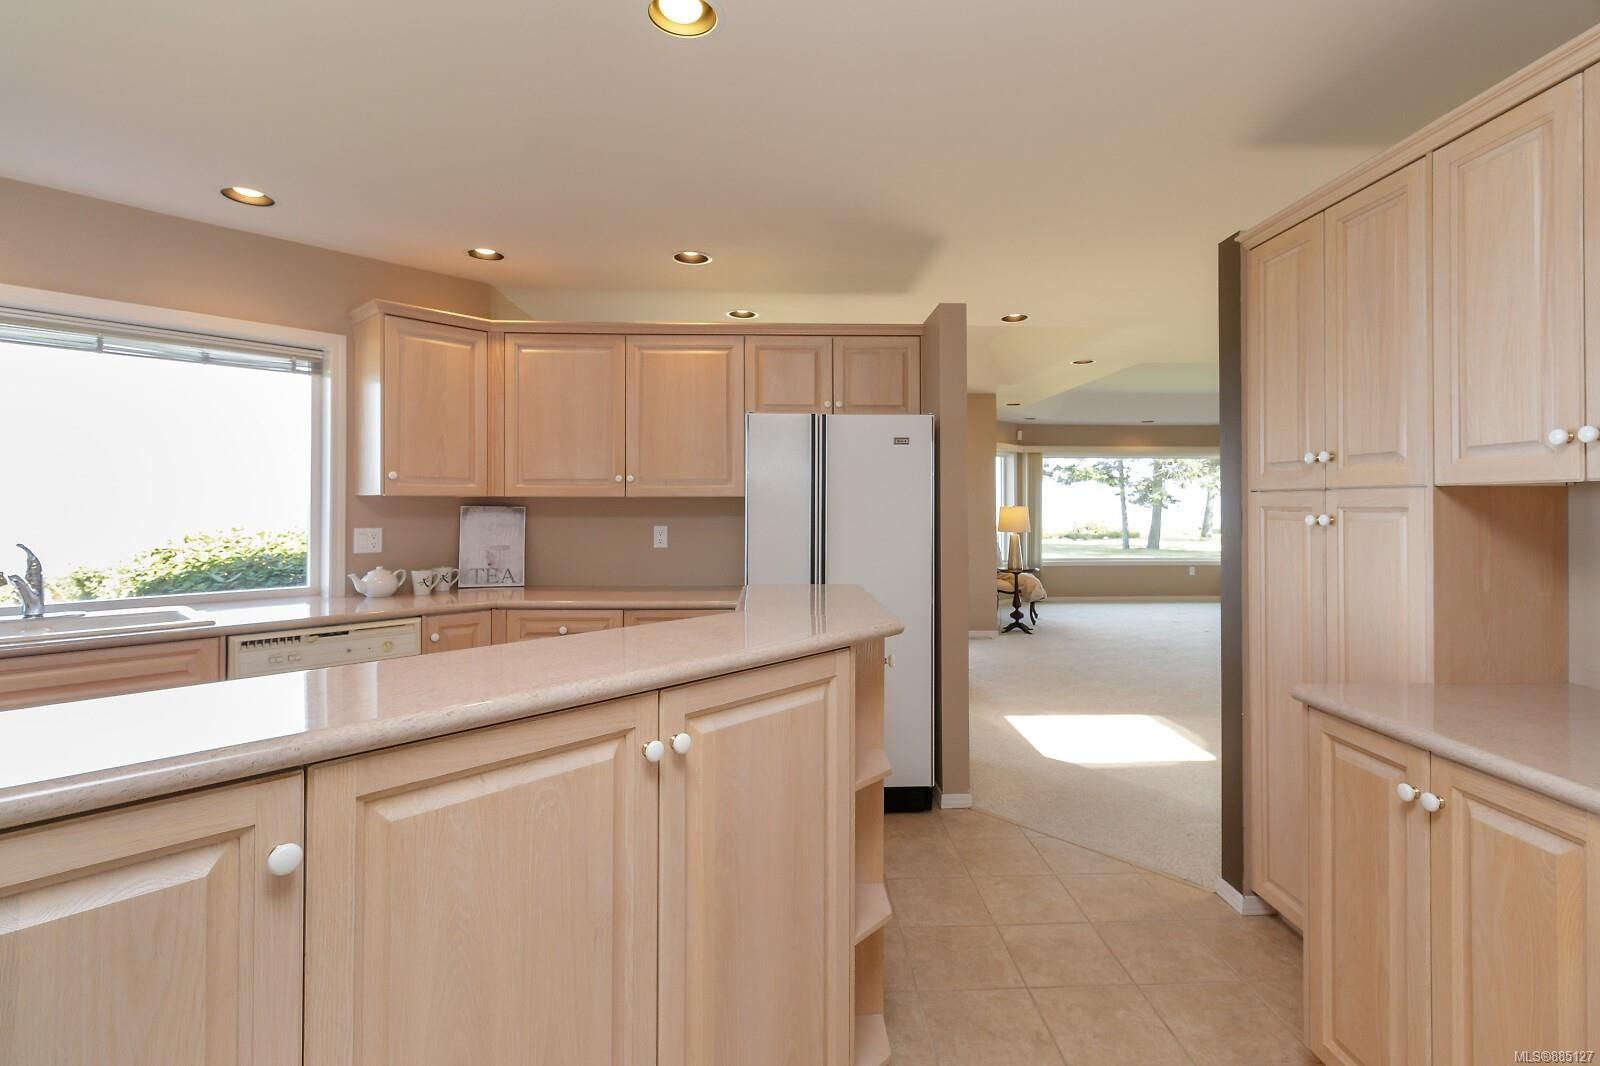 Photo 28: Photos: 26 529 Johnstone Rd in : PQ French Creek Row/Townhouse for sale (Parksville/Qualicum)  : MLS®# 885127